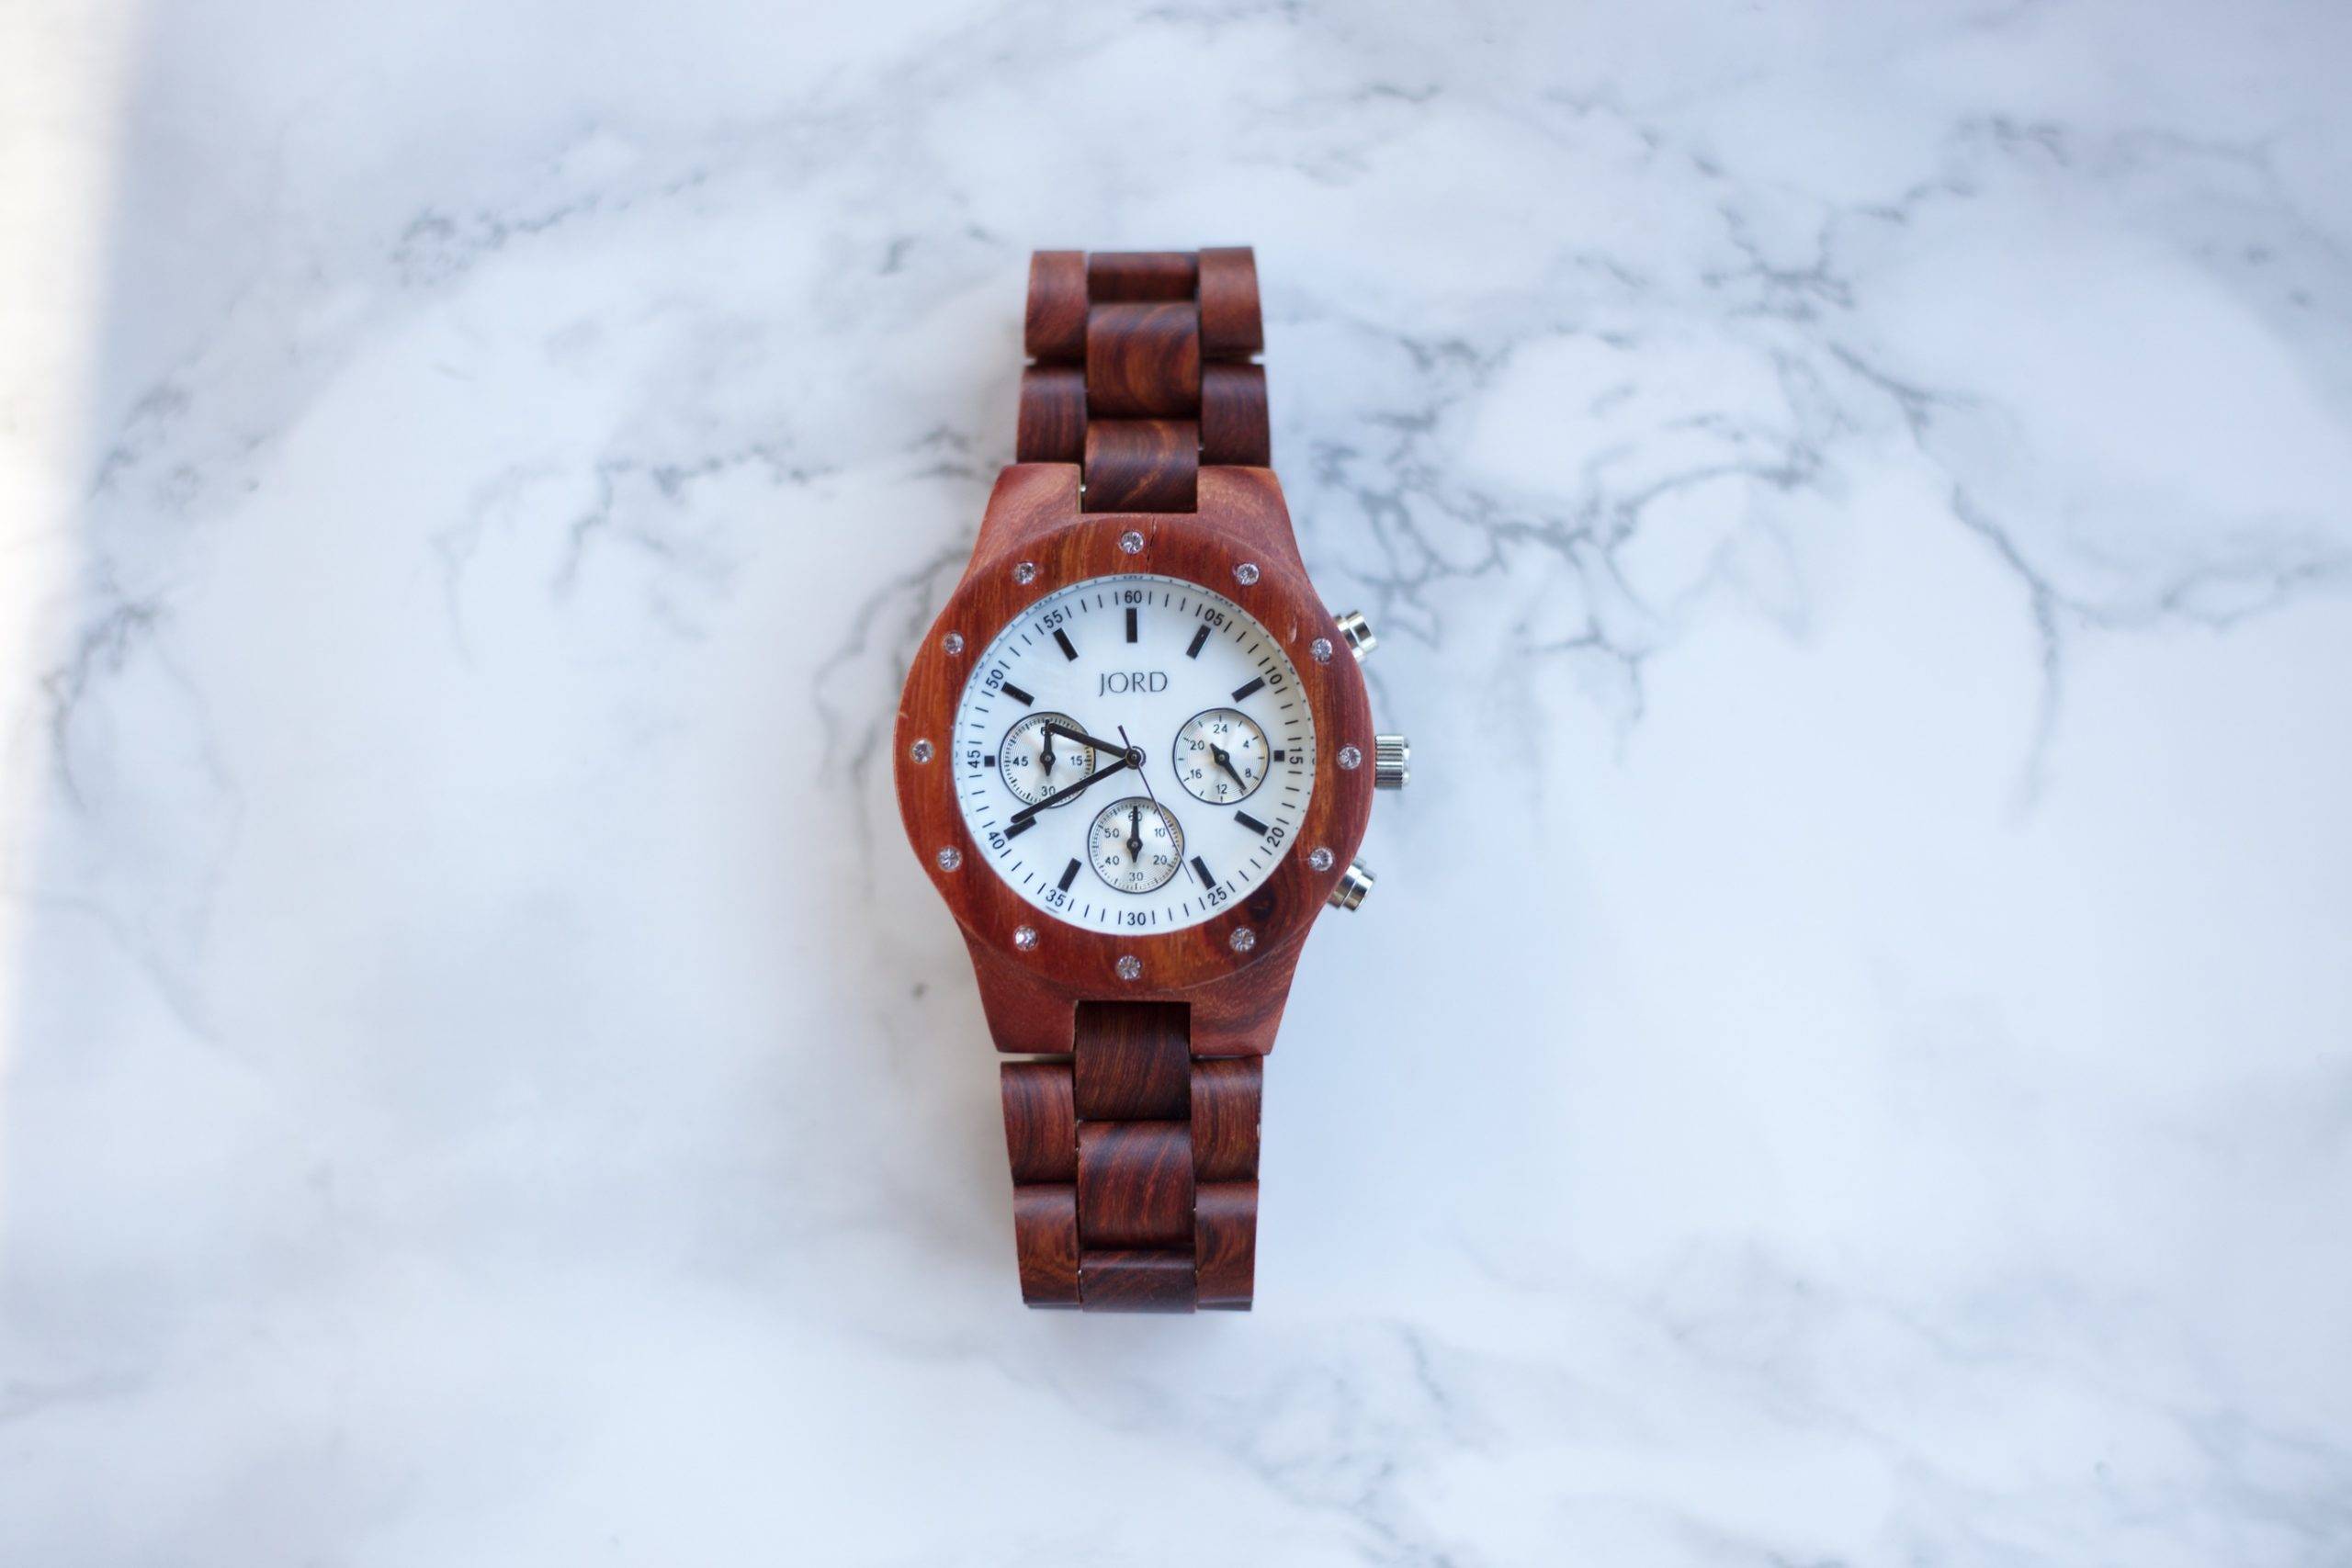 woods review gorgeous unique watch watches s made wood giveaway men pin from jord